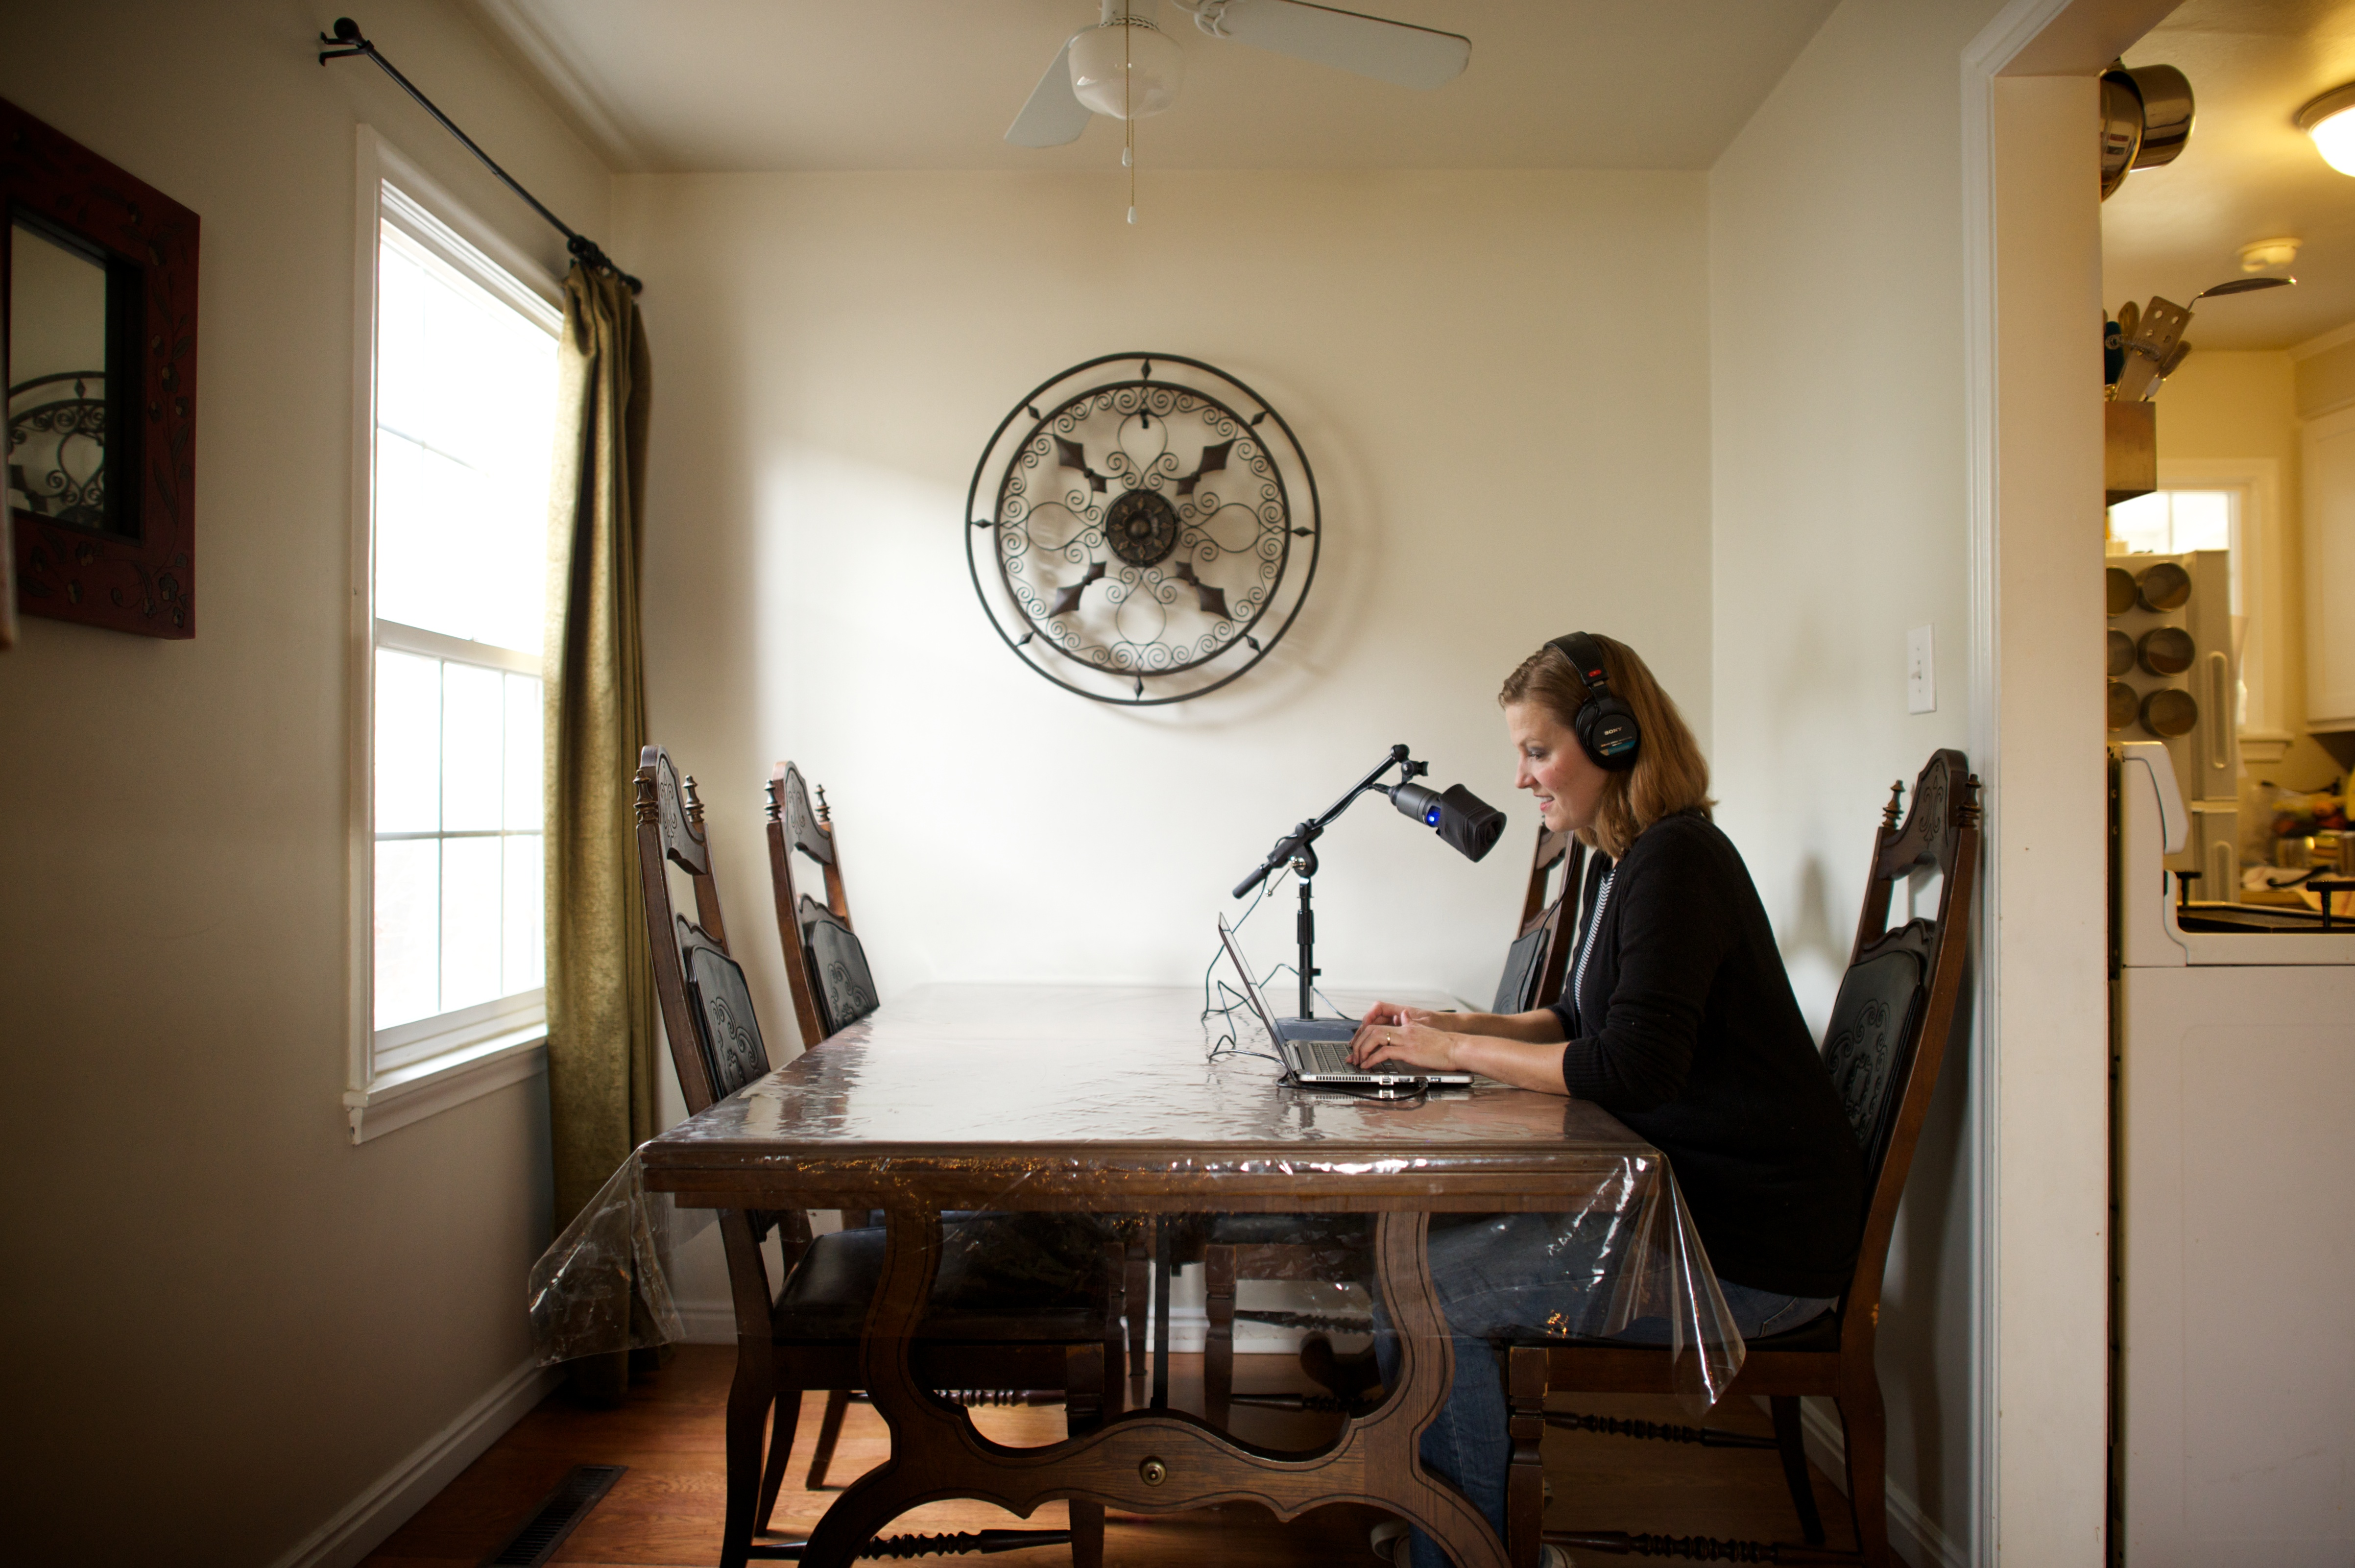 Voice talents for The Church of Jesus Christ of Latter-day Saints can now record audio of scripture translations at home before sending them in for approval.